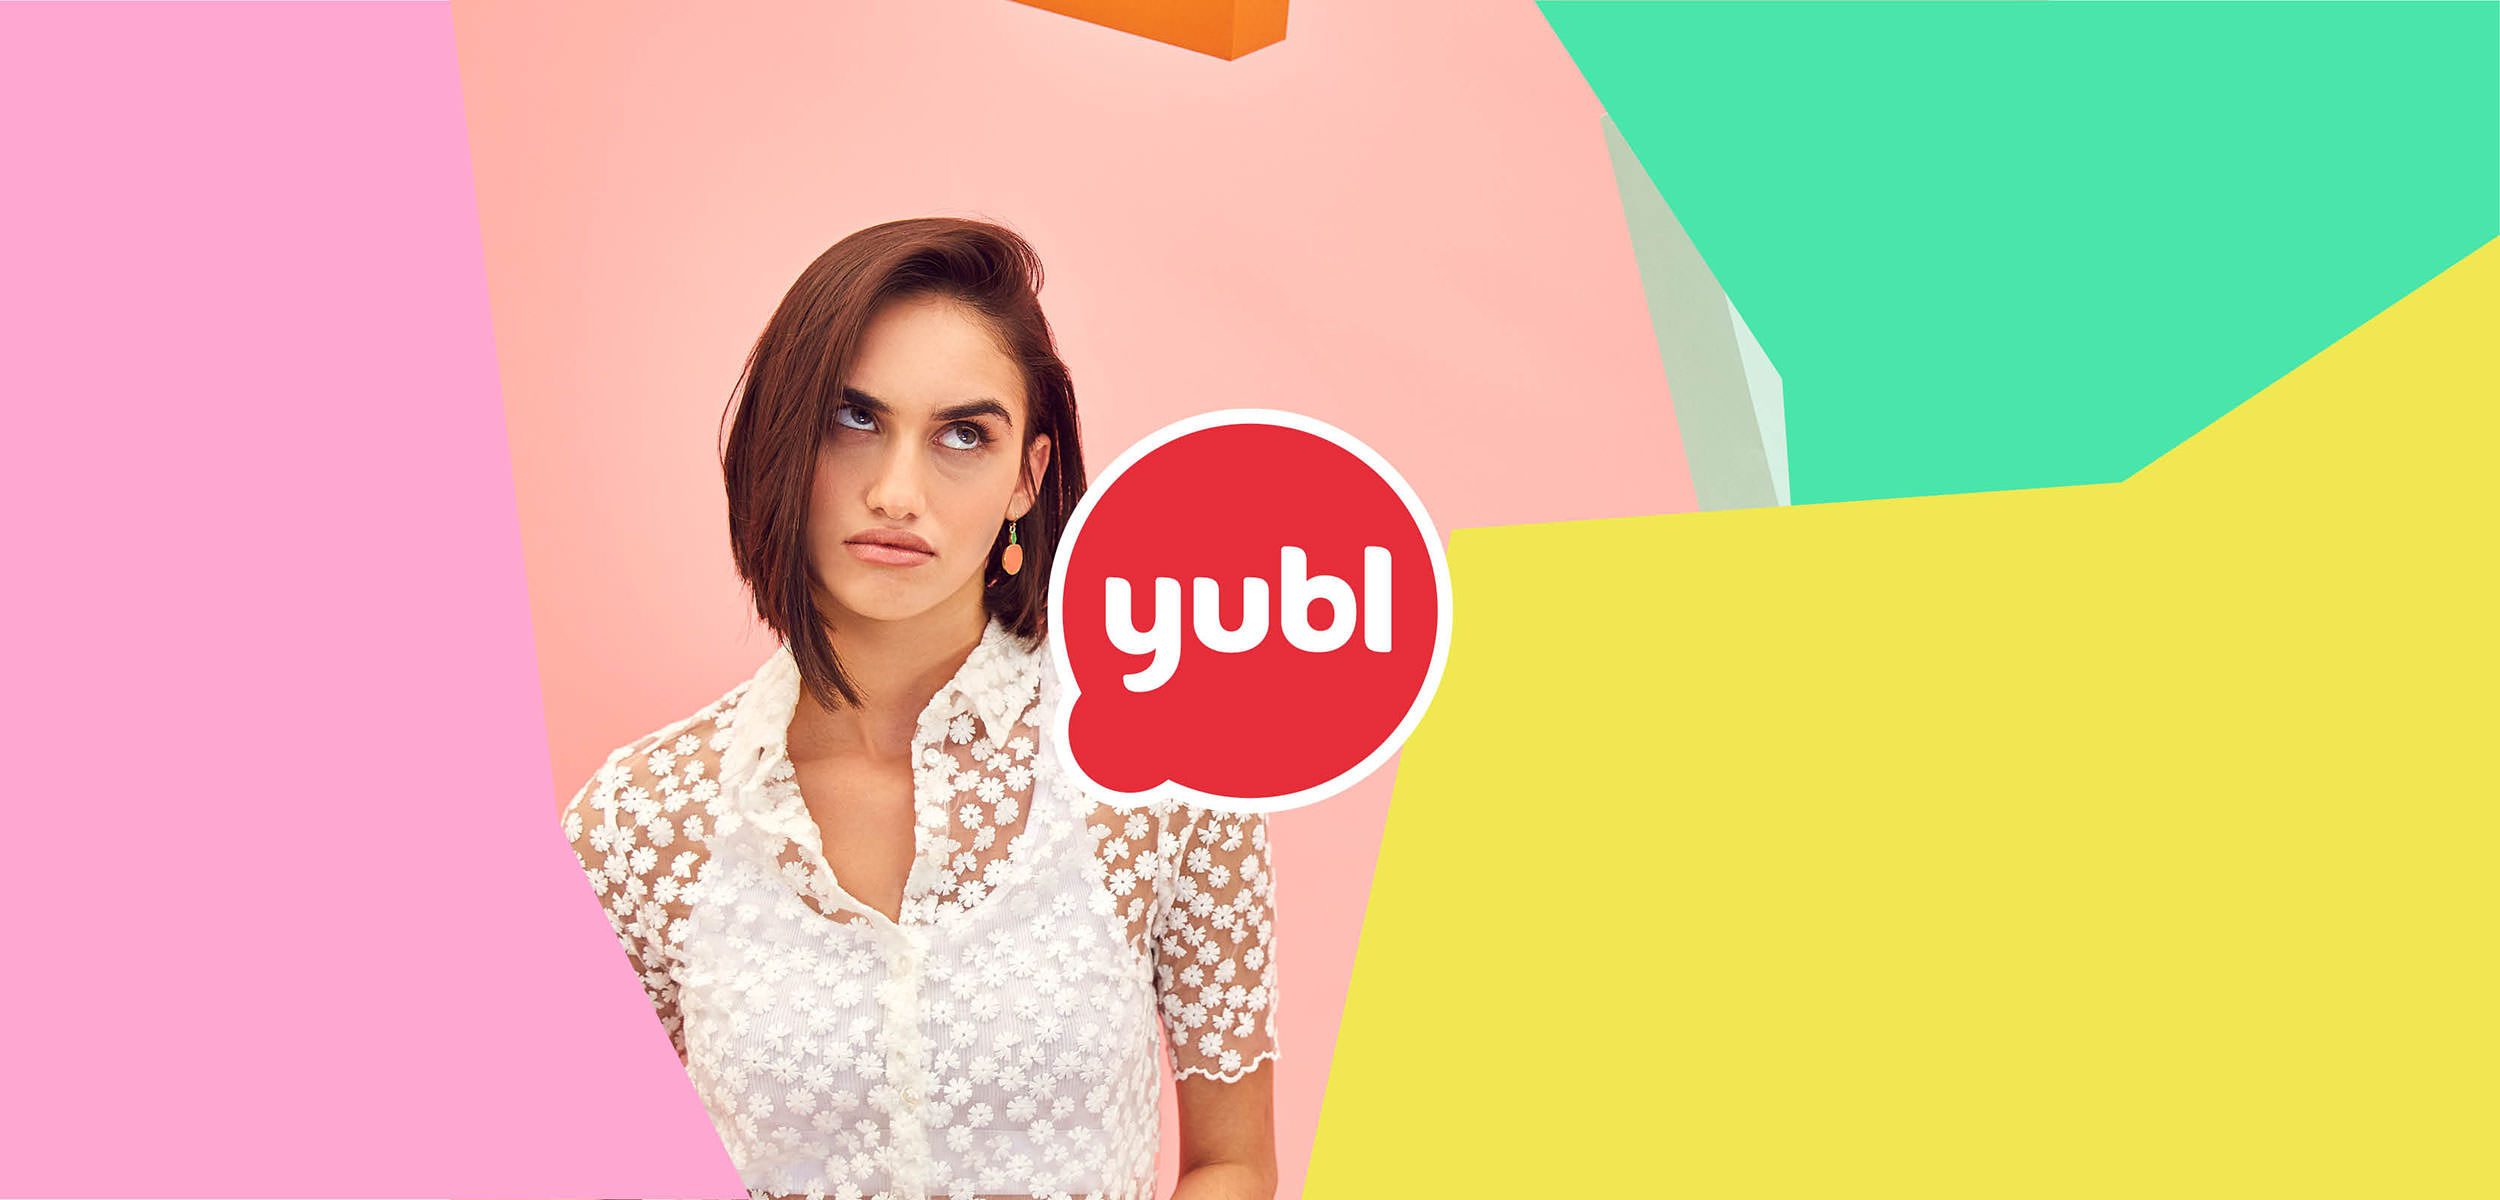 Yubl2